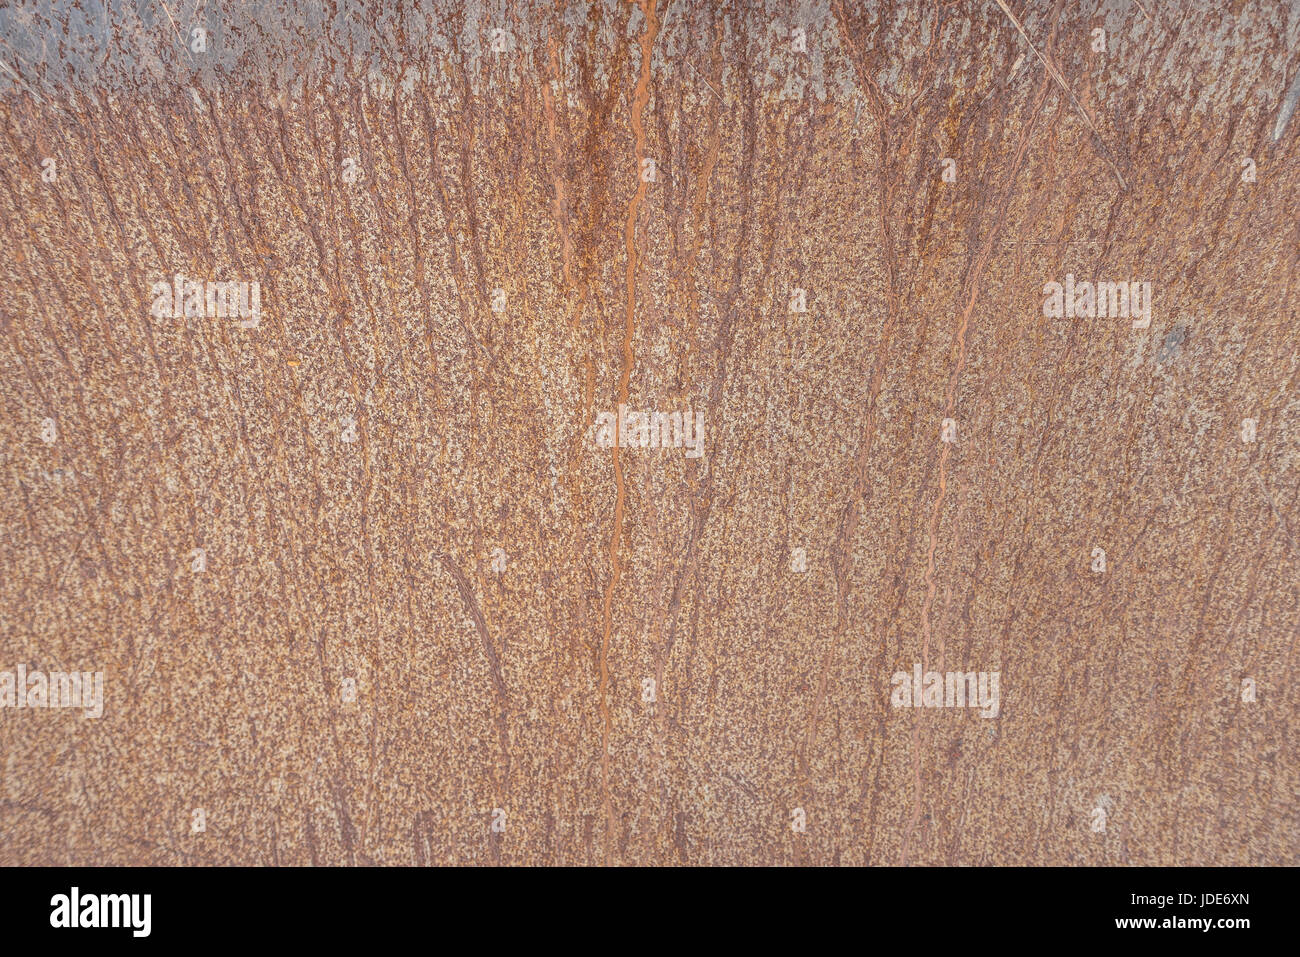 Iron Plates Stock Photos Amp Iron Plates Stock Images Alamy